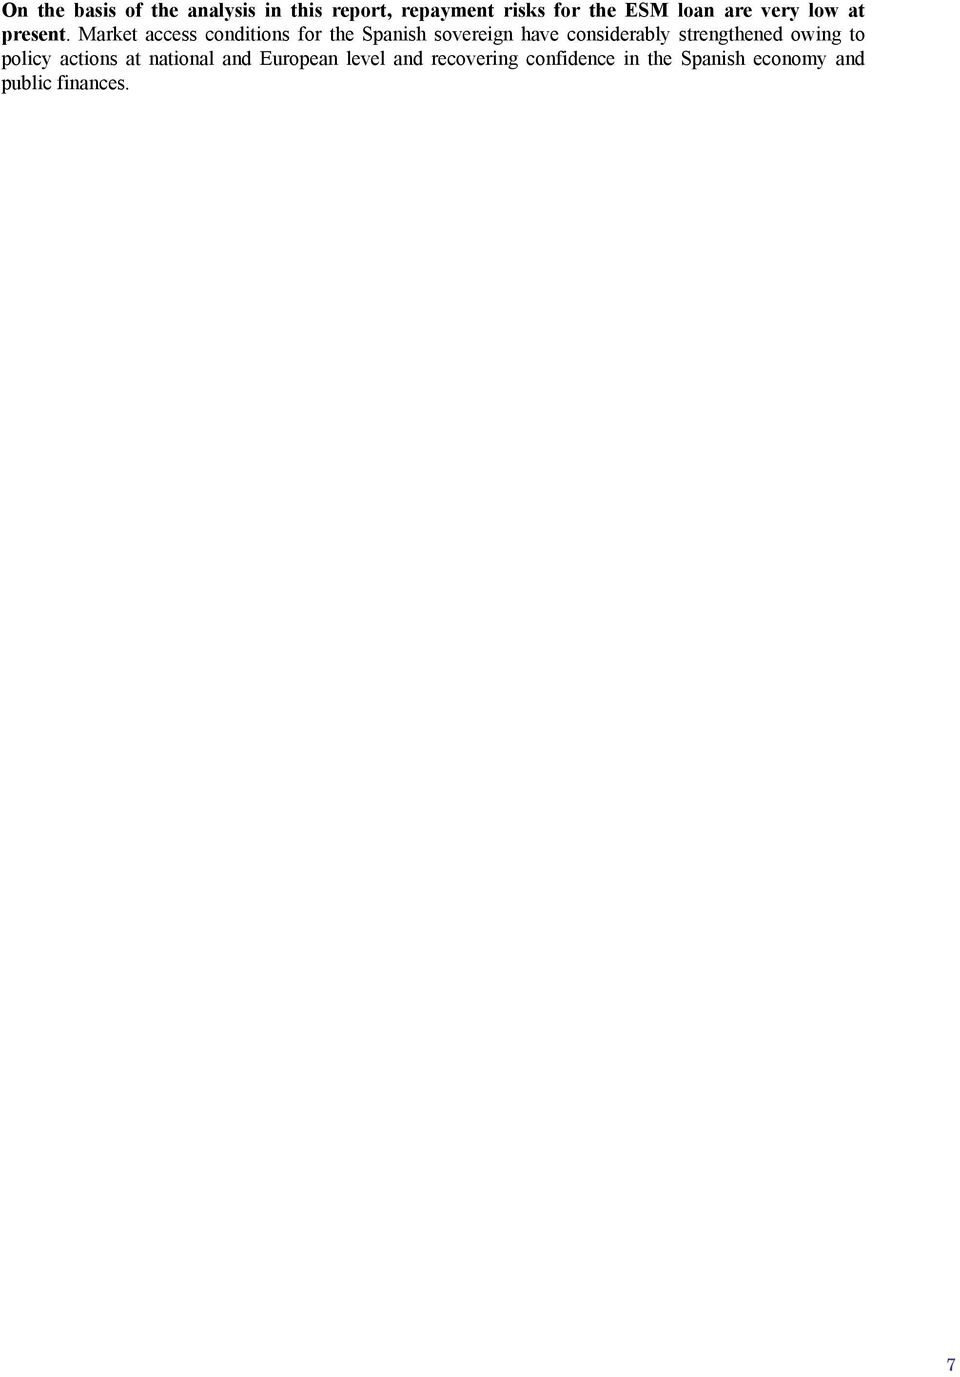 Market access conditions for the Spanish sovereign have considerably